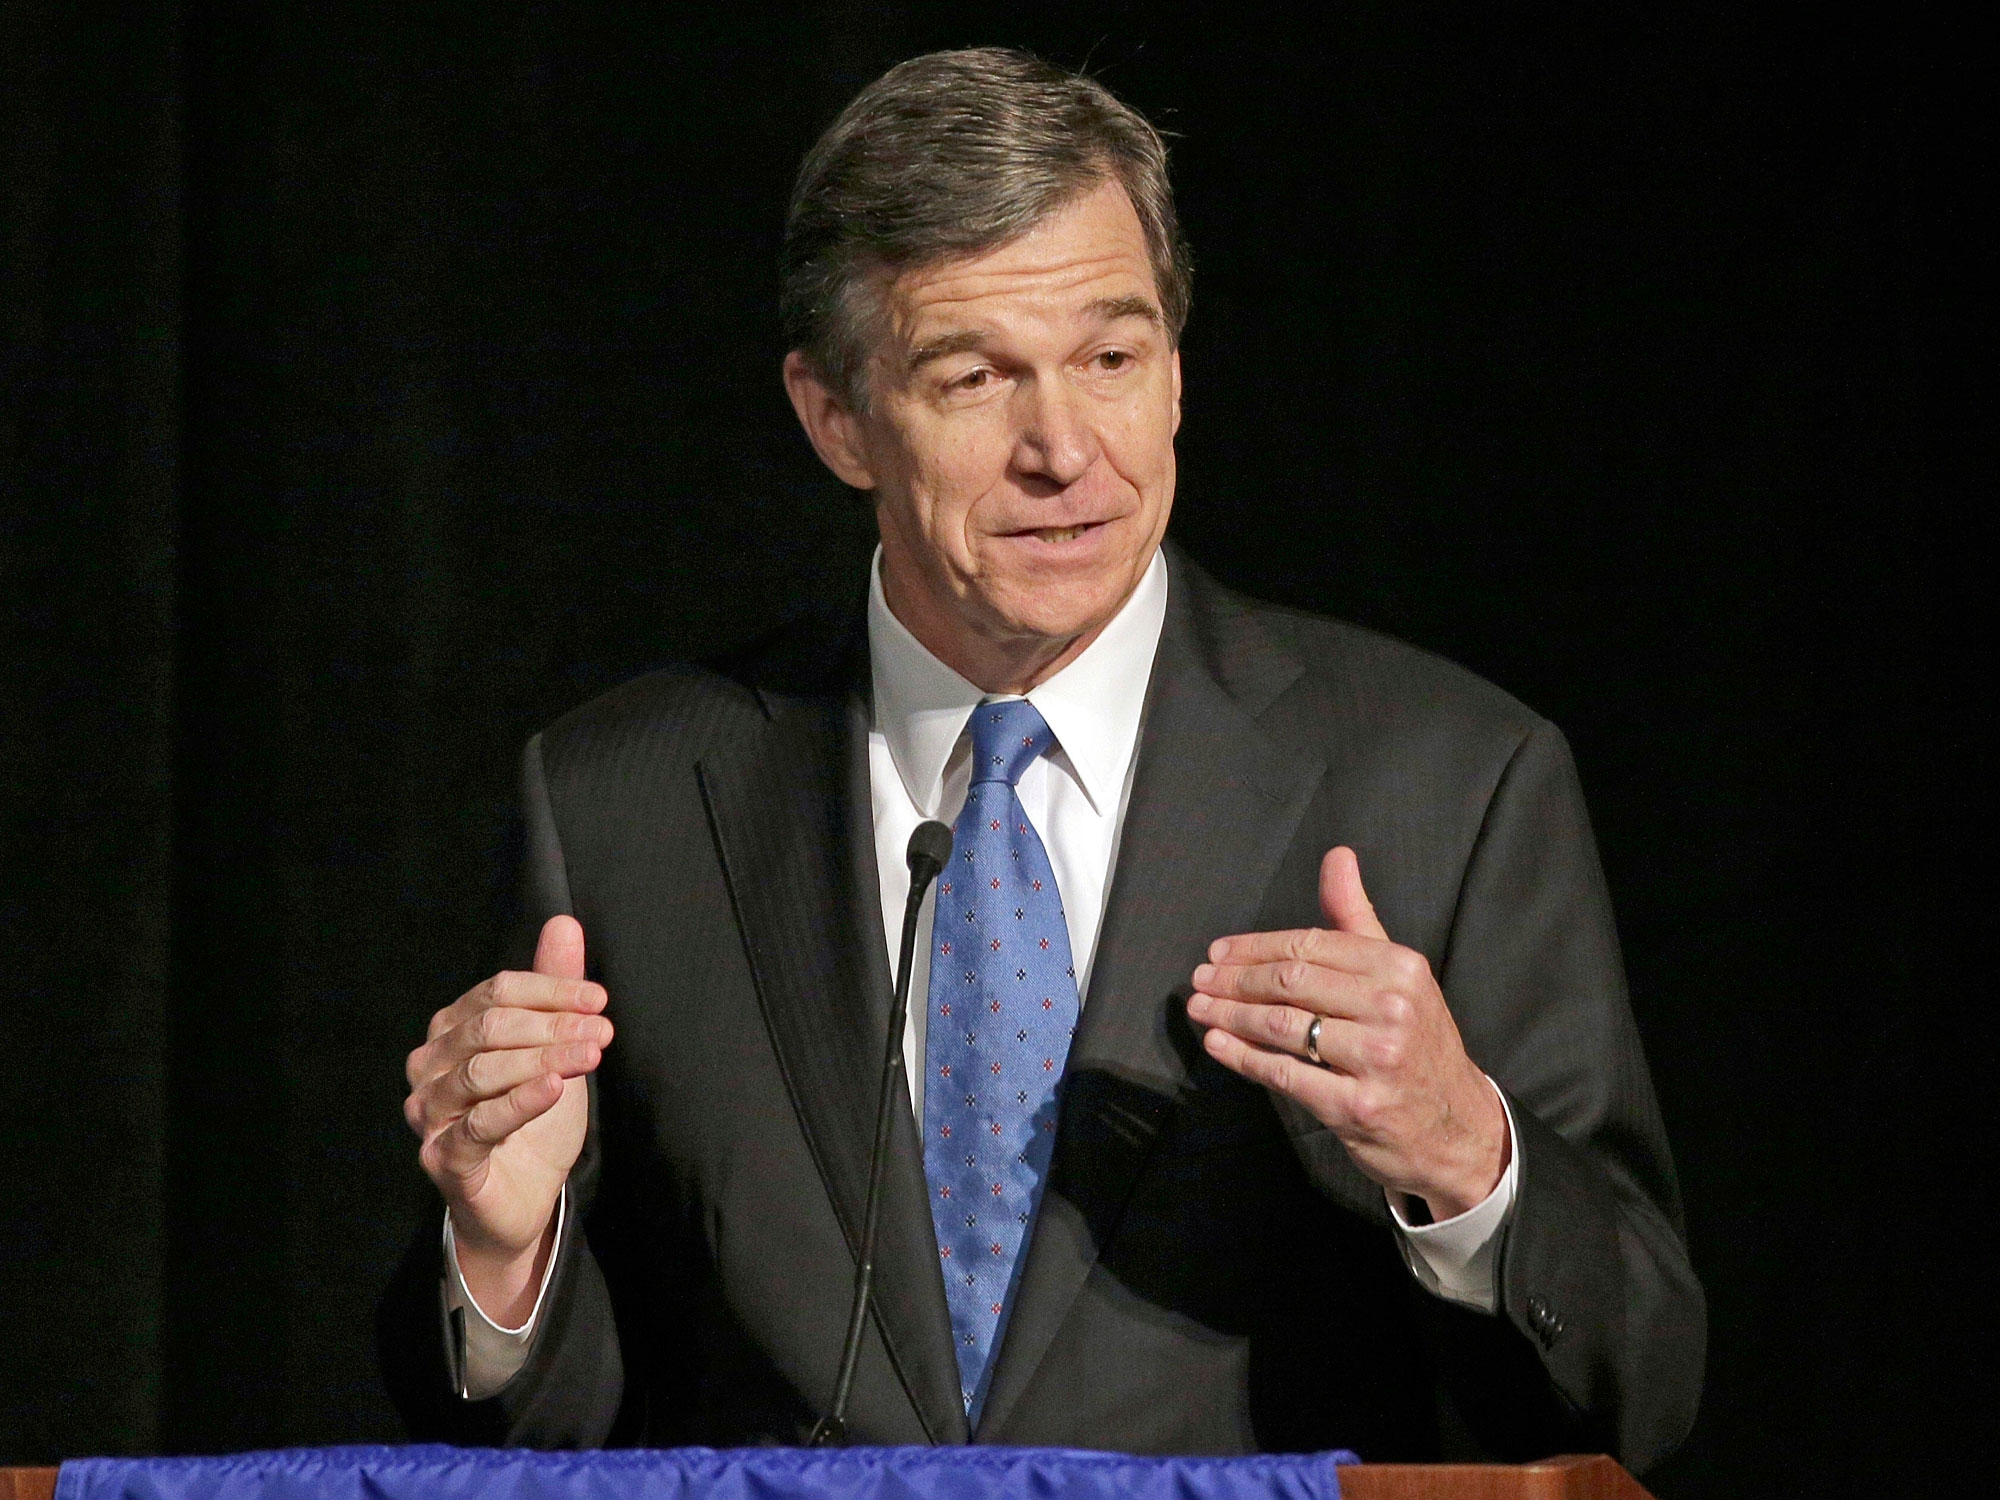 North Carolina's governor, Roy Cooper, is hoping to repeal HB2, the law that caused the NCAA and other organizations to pull events and businesses from the state.